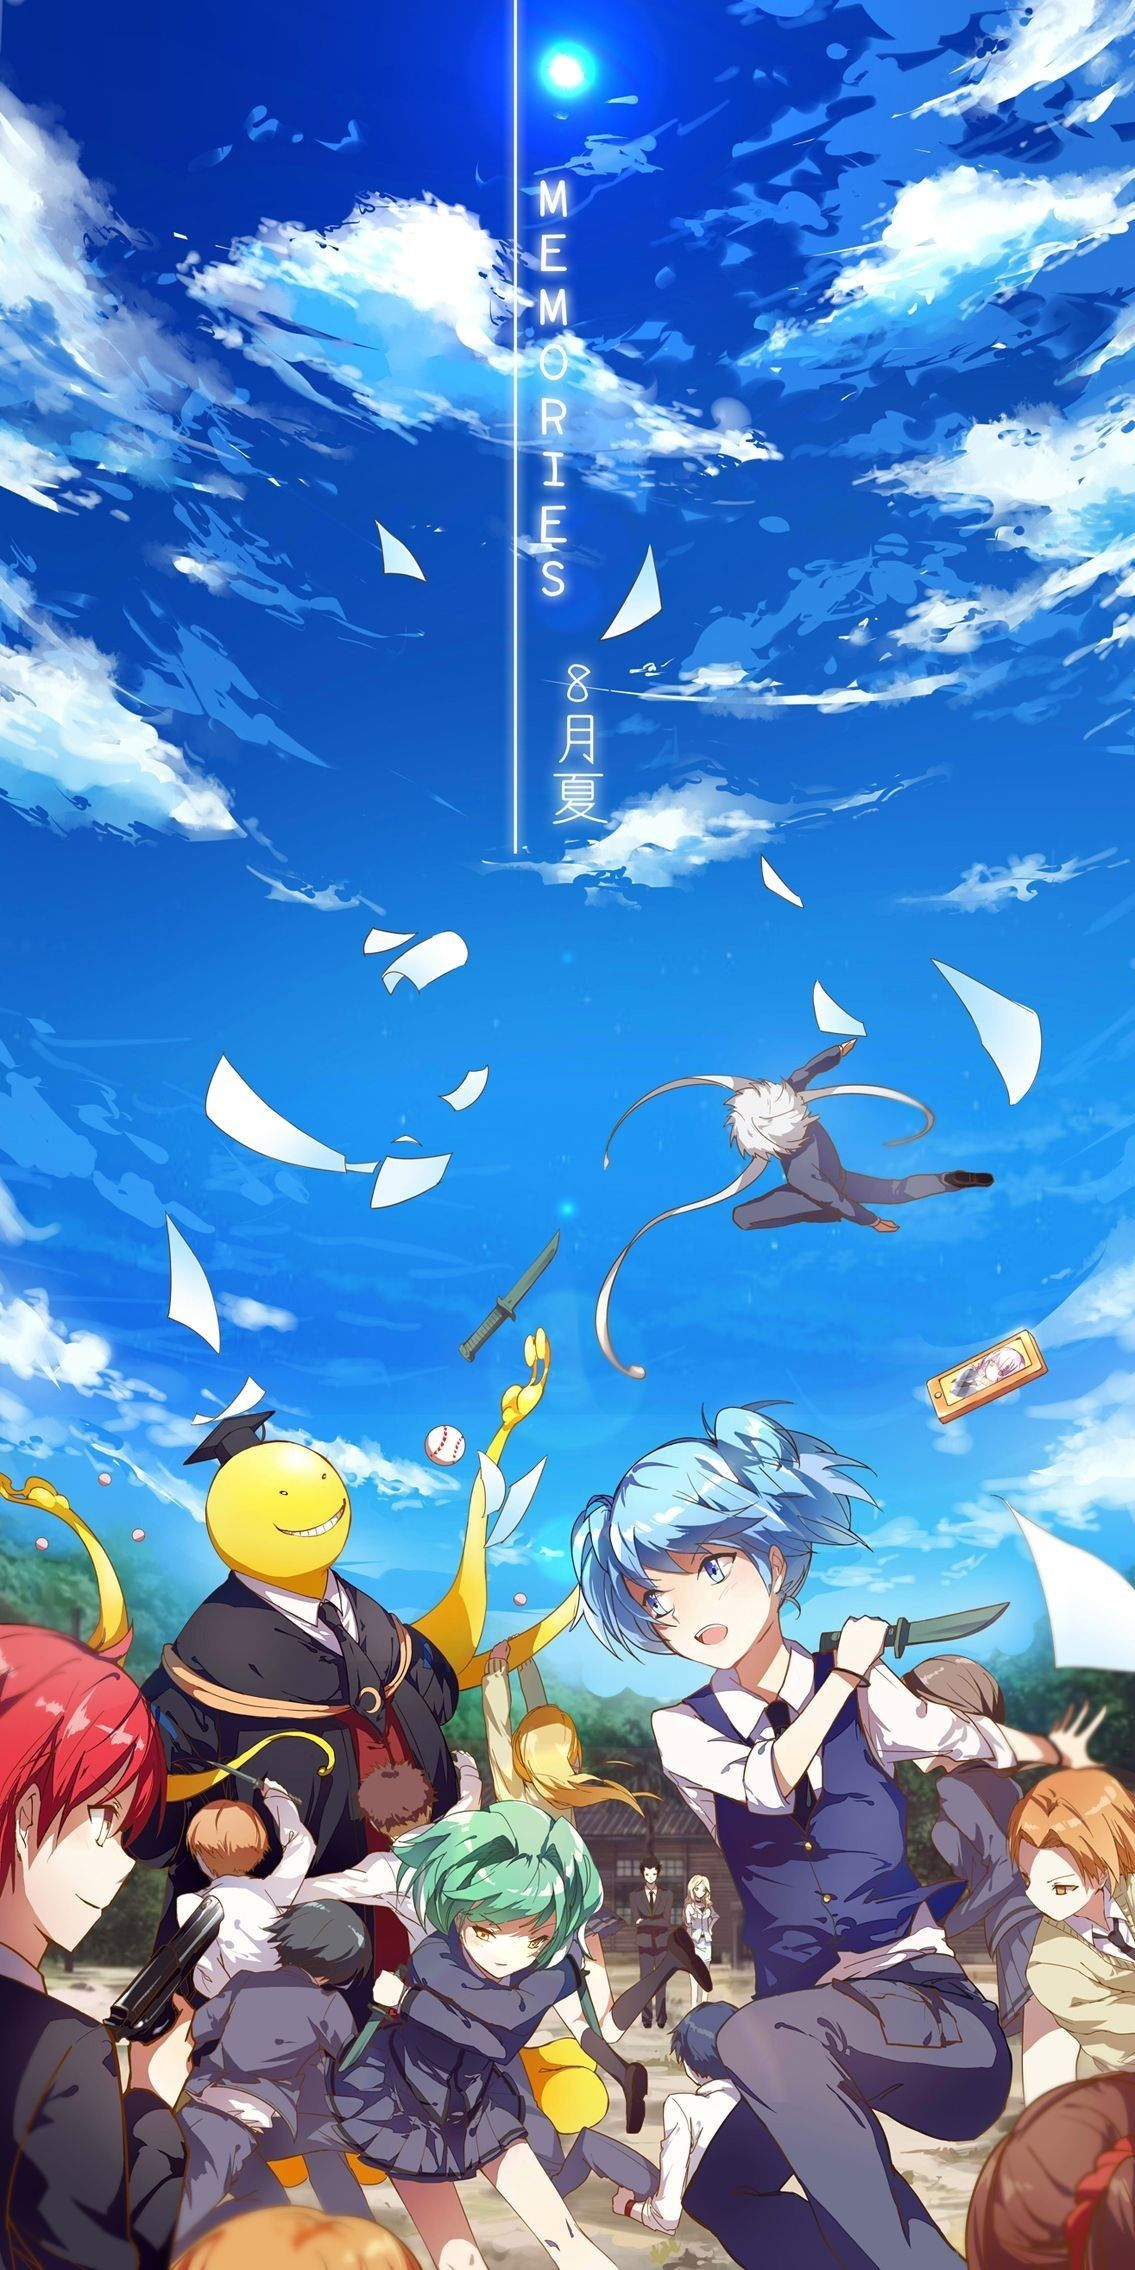 Assassination Classroom Wallpaper Fondo De Anime Fondos